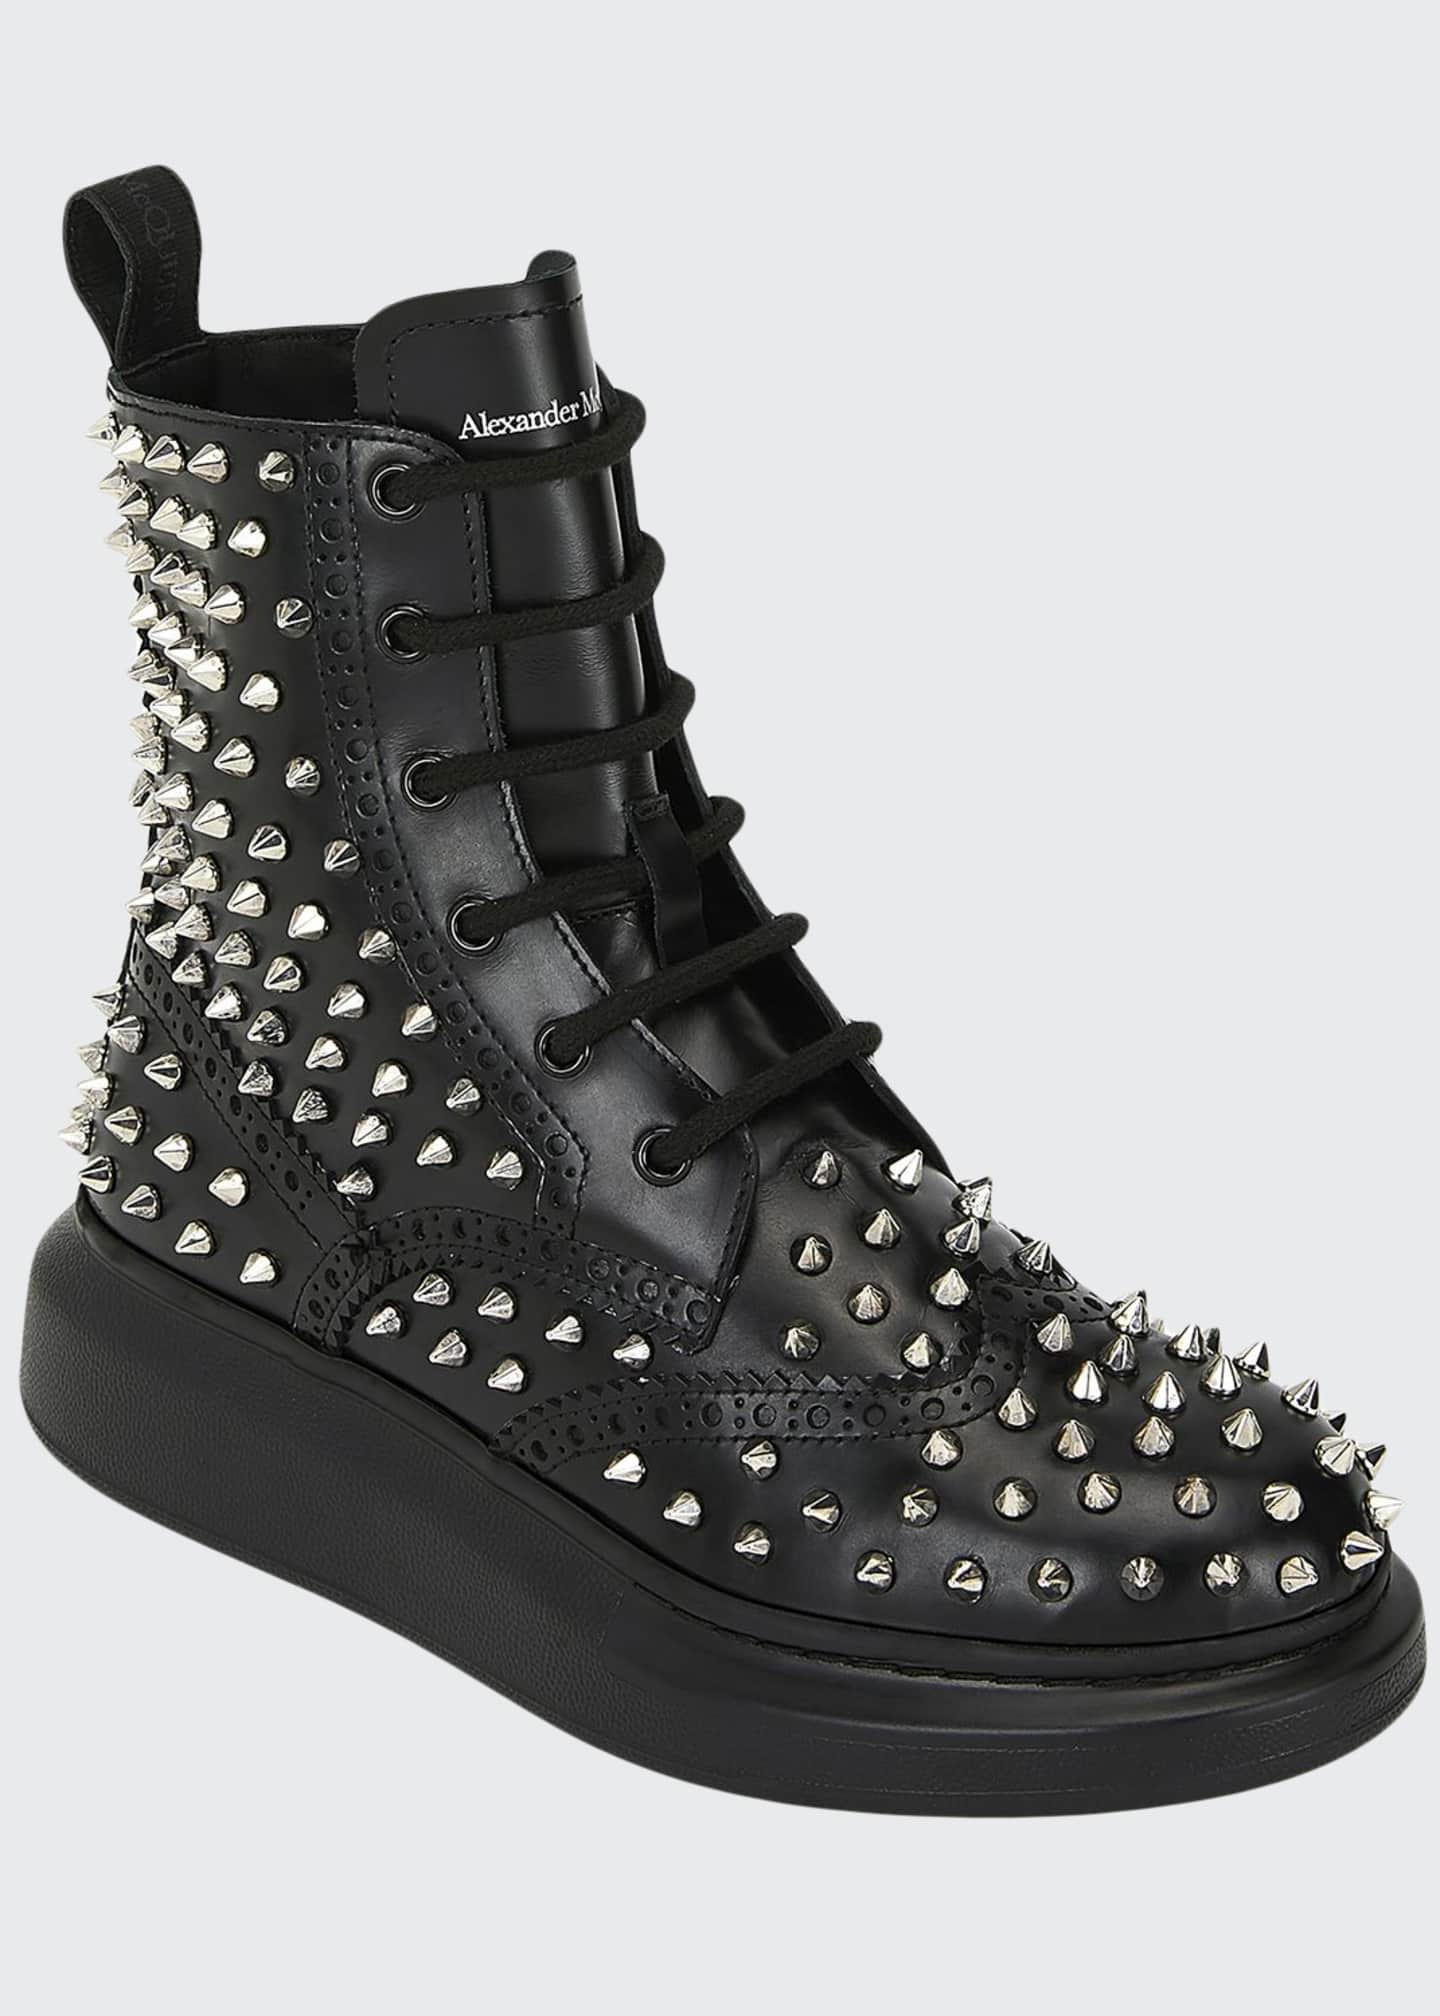 Alexander McQueen High-Top Spike Leather Boots